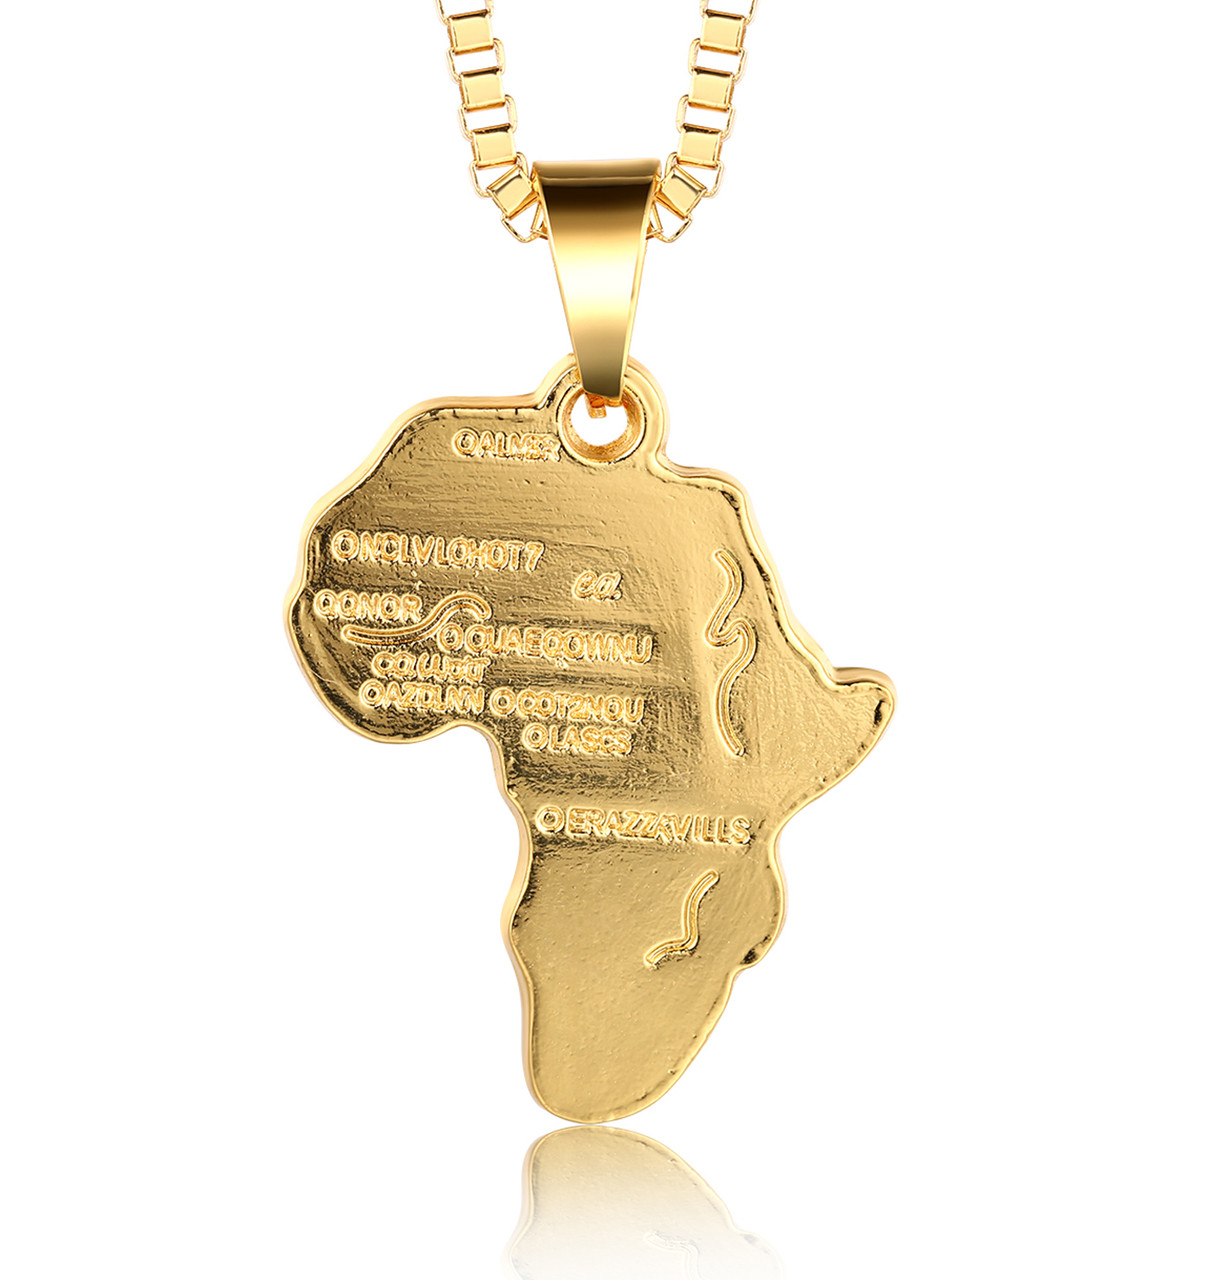 Halukakah africa map 18k real gold plated pendant necklacecz halukakah africa map 18k real gold plated pendant necklacecz inlaywith aloadofball